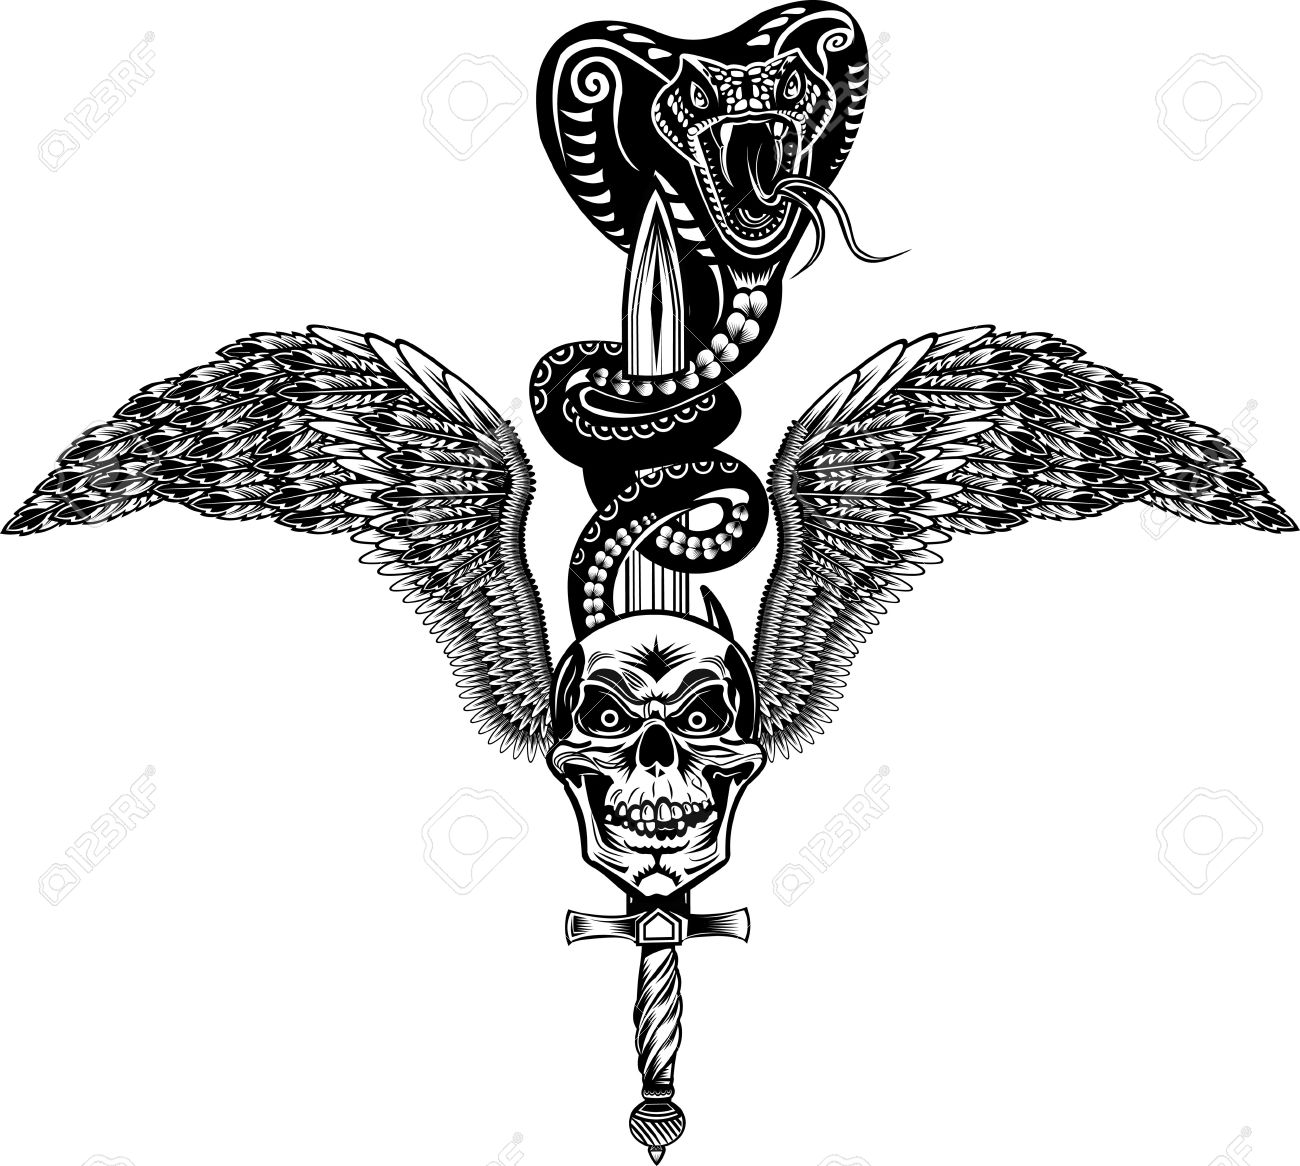 Name:  50056898-winged-skull-with-sword-and-snake-tattoo-cobra.jpg Views: 277 Size:  210.7 KB